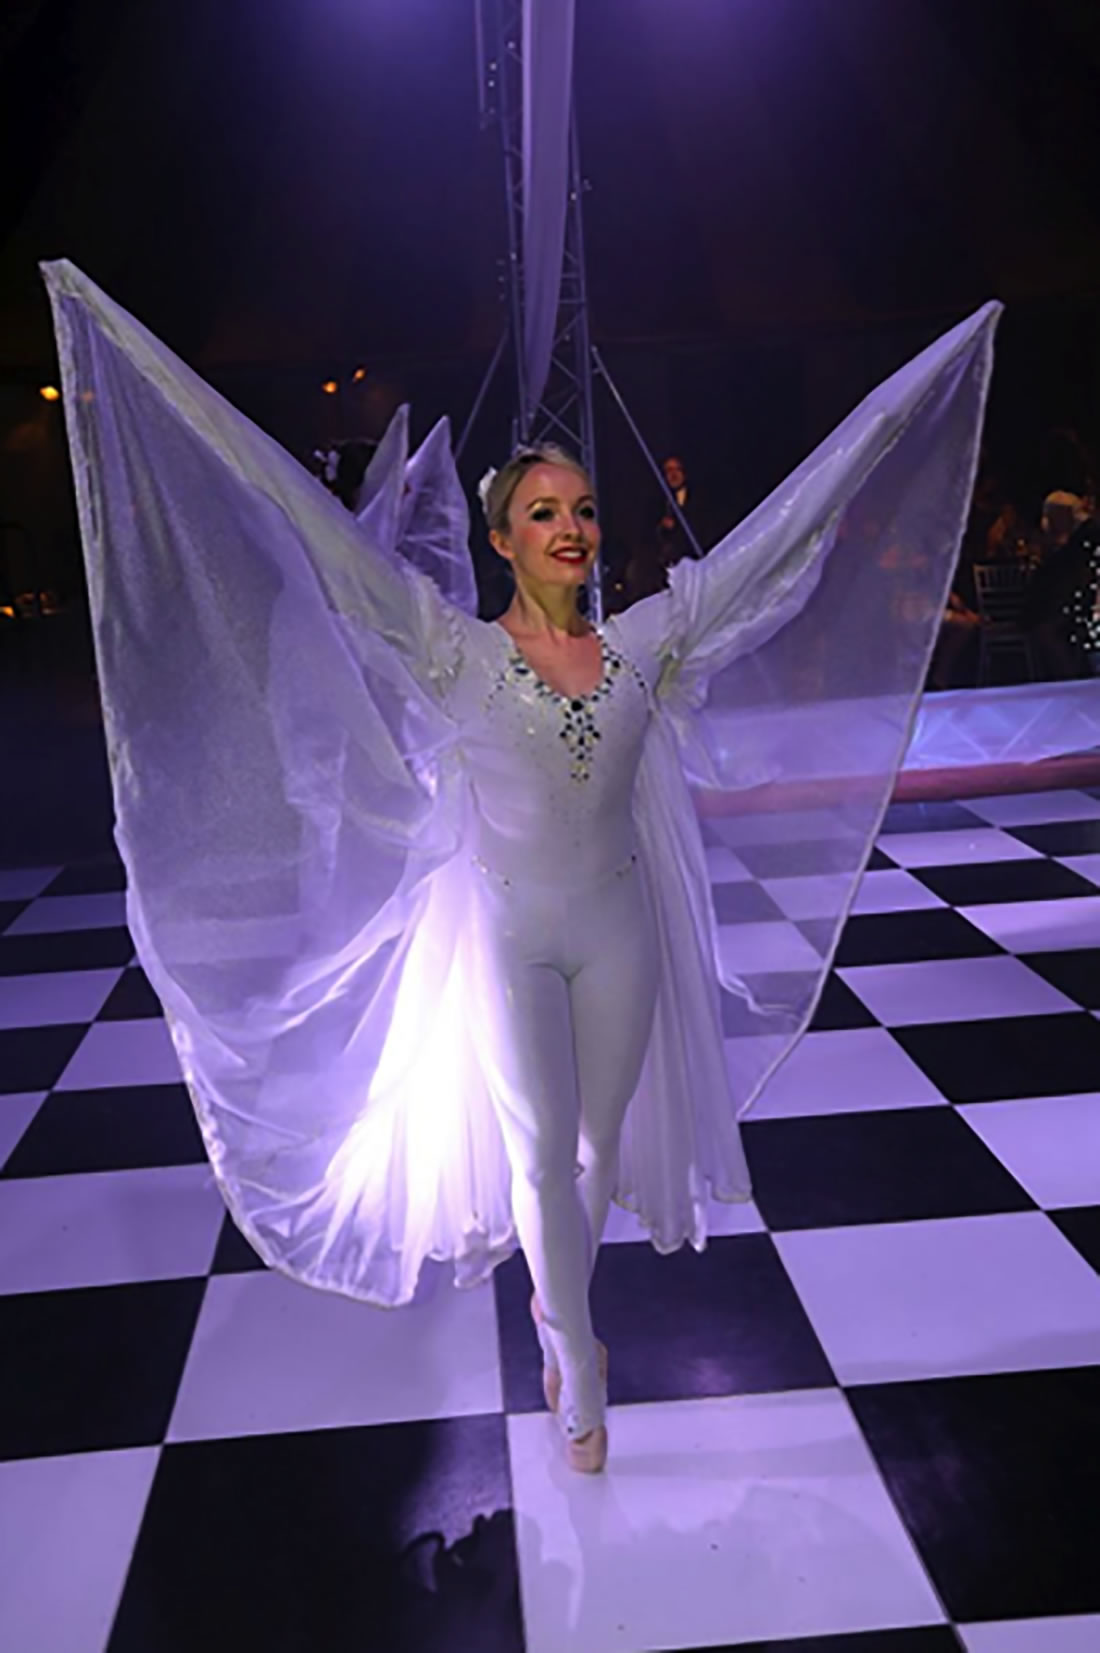 Groundbased Shows - Ballerinas Gallery - Exeter Corporate event